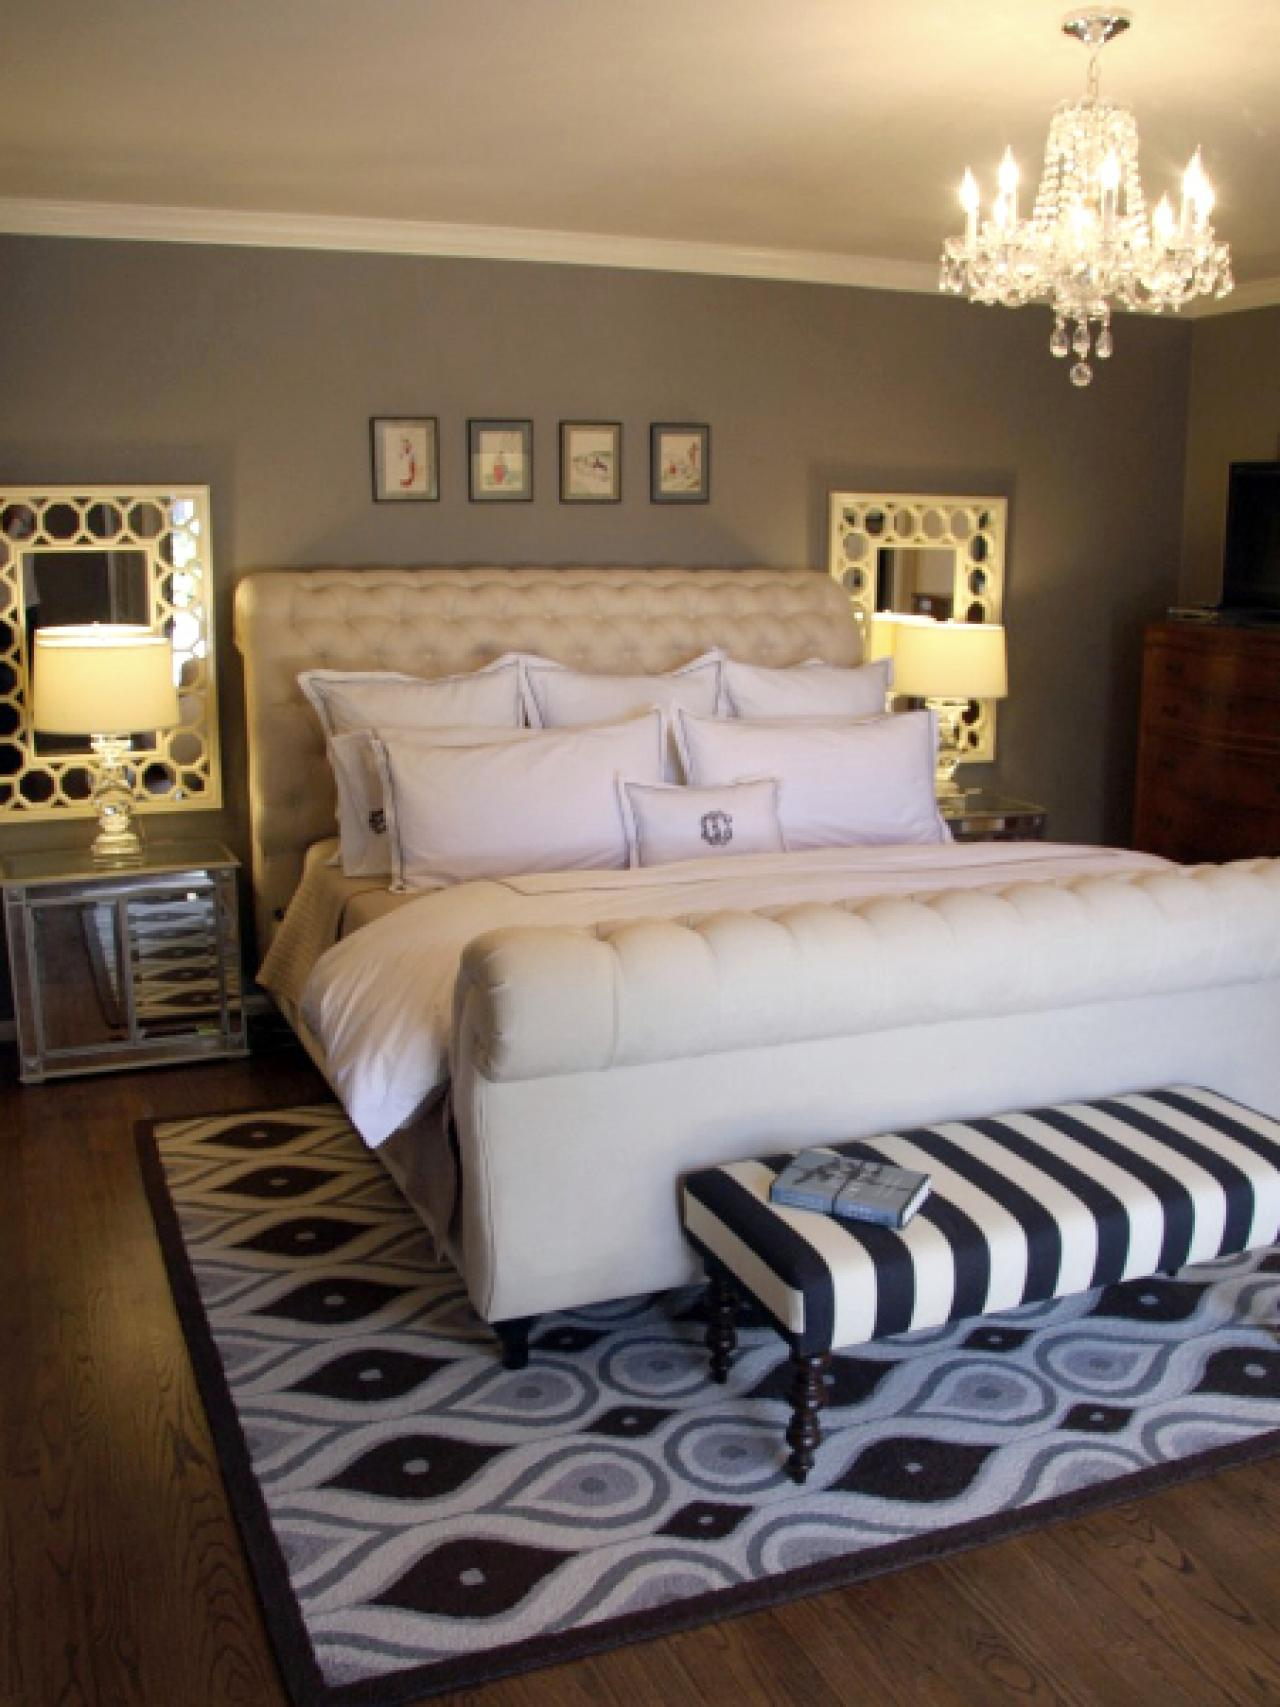 Designing The Bedroom As A Adorable Bedroom Ideas For Couples  Jpeg